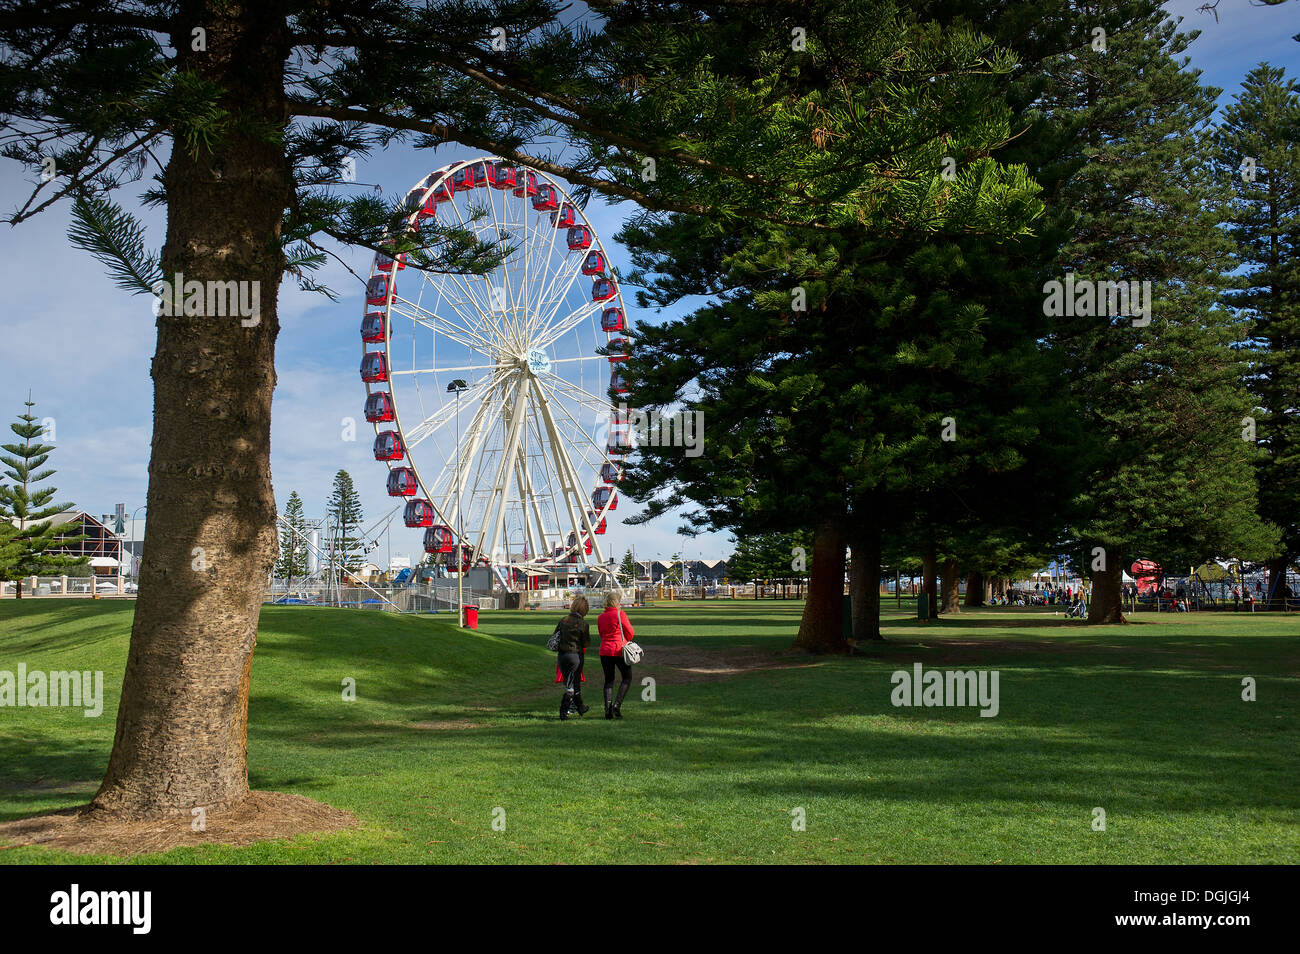 The Skyview Observation Wheel in Fremantle. - Stock Image